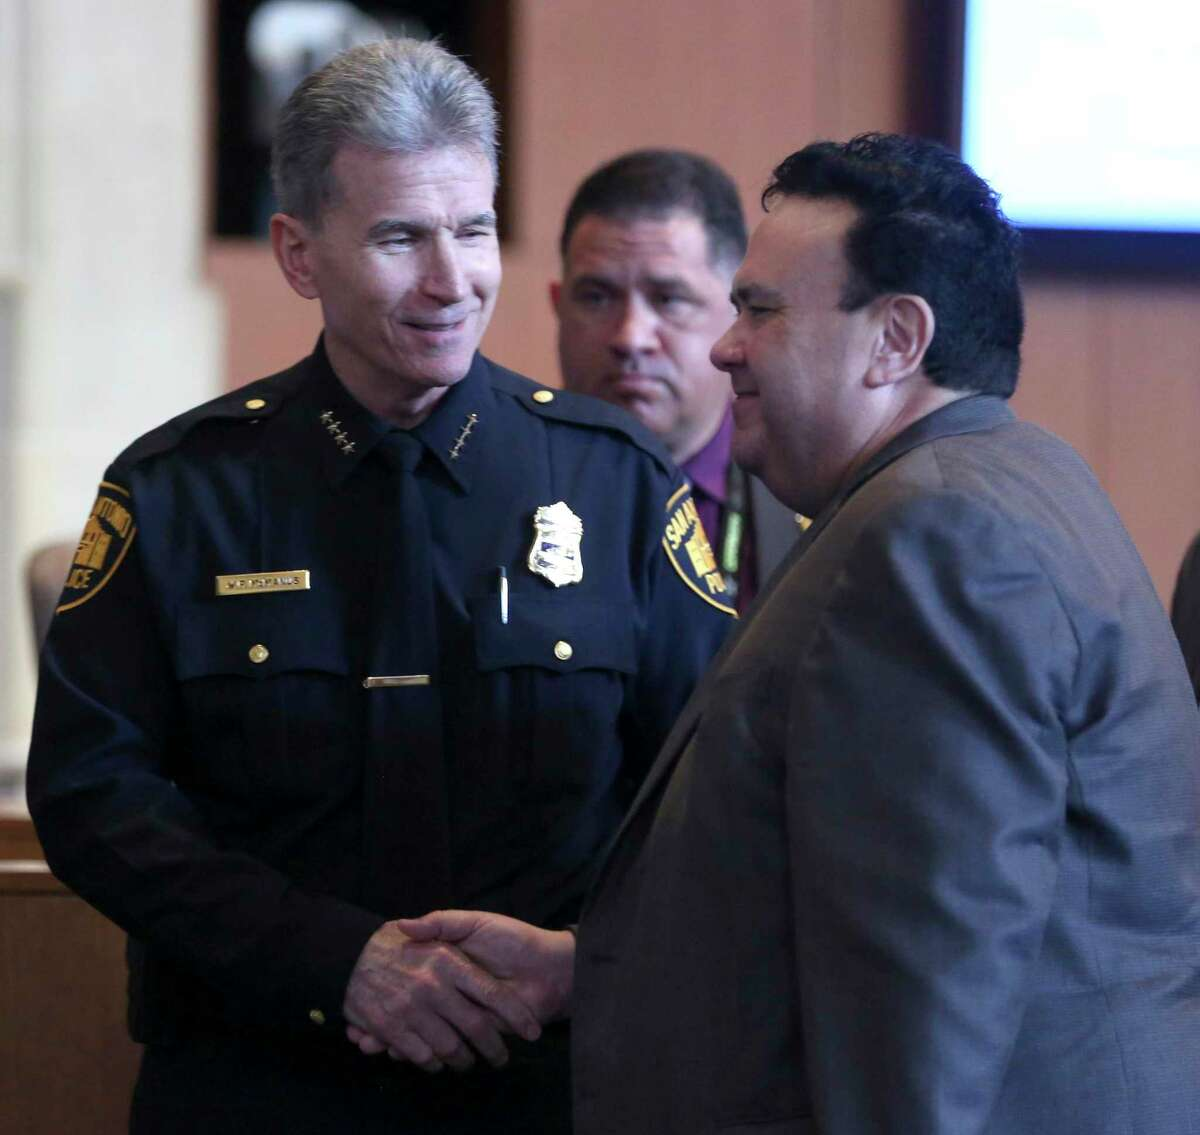 San Antonio police chief William McManus, left, shakes hands with Richard Wells, president and owner of Dailey-Wells Communications, Thursday, Feb. 15, 2018 in council chambers his company was awarded a 15-year, $106 million contract to build the city's next public safety radio network. Dailey-Wells received the contract with 8 yeas, two absent, and one not voting council member.